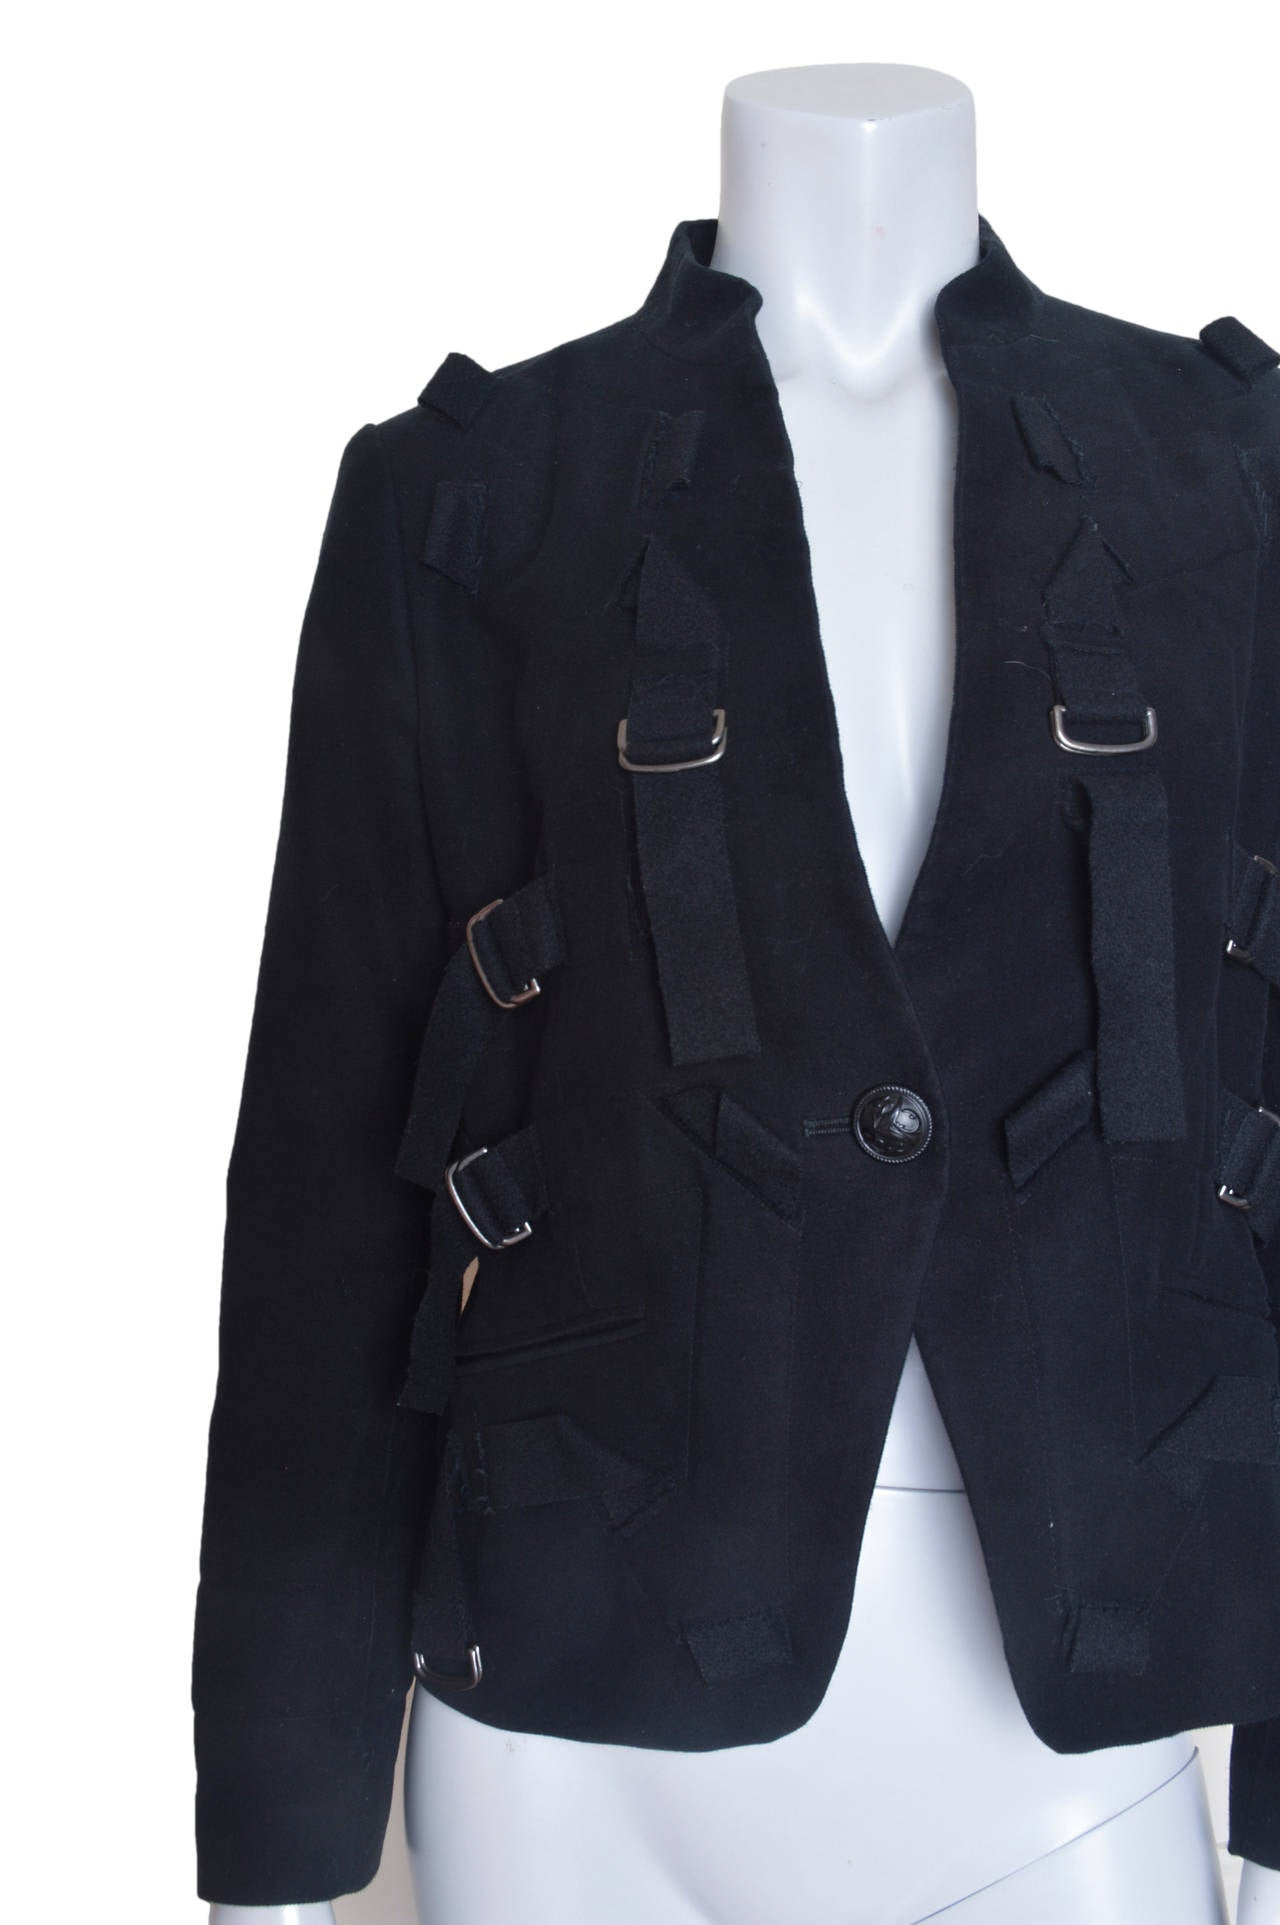 Issey Miyake Black Parachute Bondage Straps & Buckles Jacket In Excellent Condition For Sale In San Francisco, CA